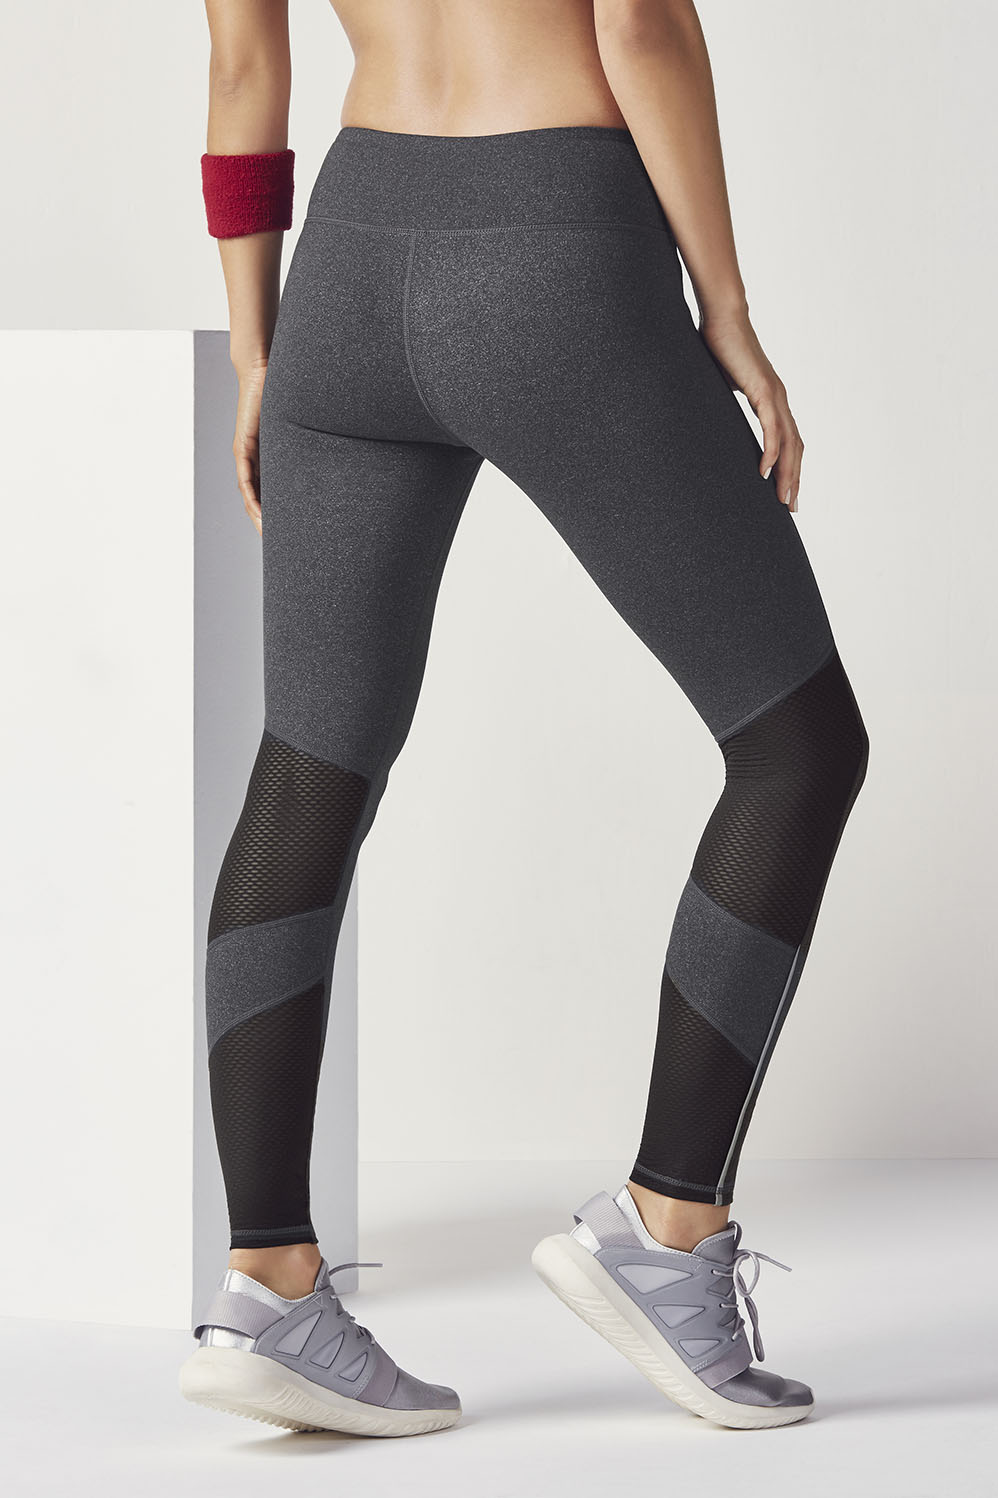 c3dfe8576a8362 Salar Mesh PowerHold® Leggings - Charcoal Heather/Black